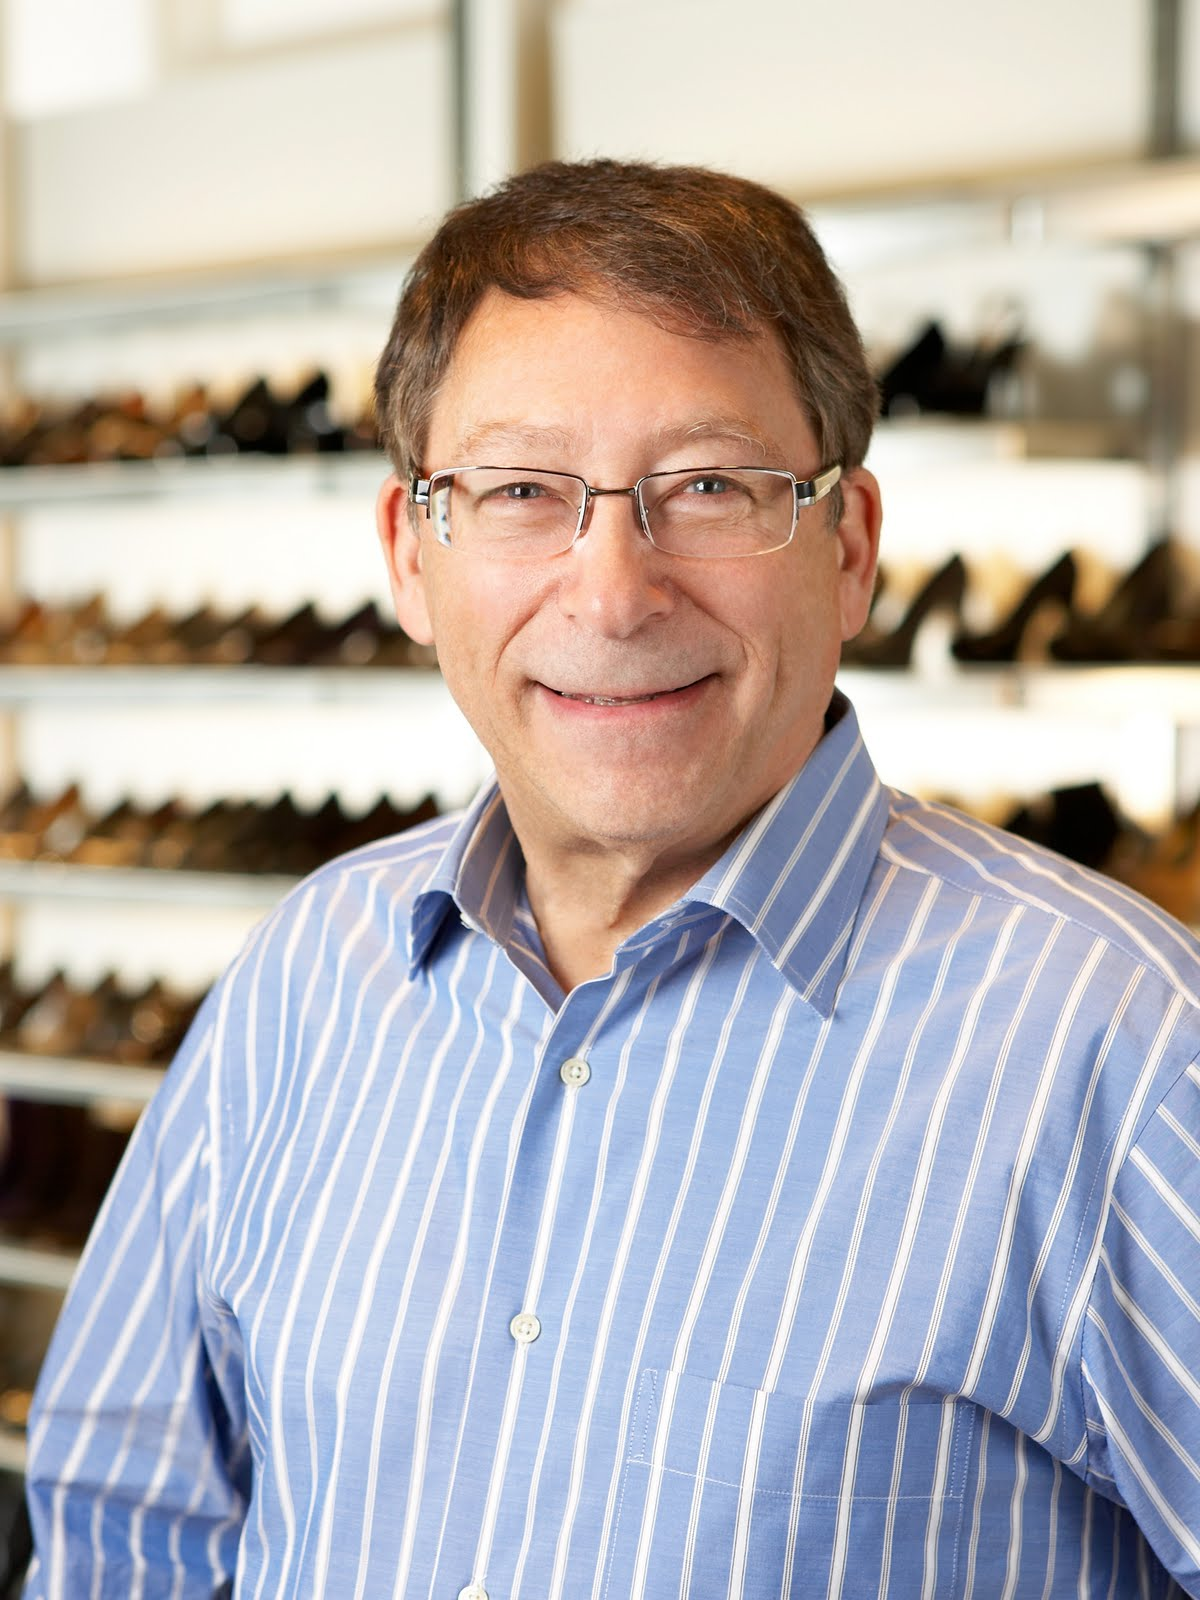 Stuart Weitzman For Mr Seymour Heels Red Yellow Purple: The Well-Heeled Society™: Q&A With Stuart Weitzman